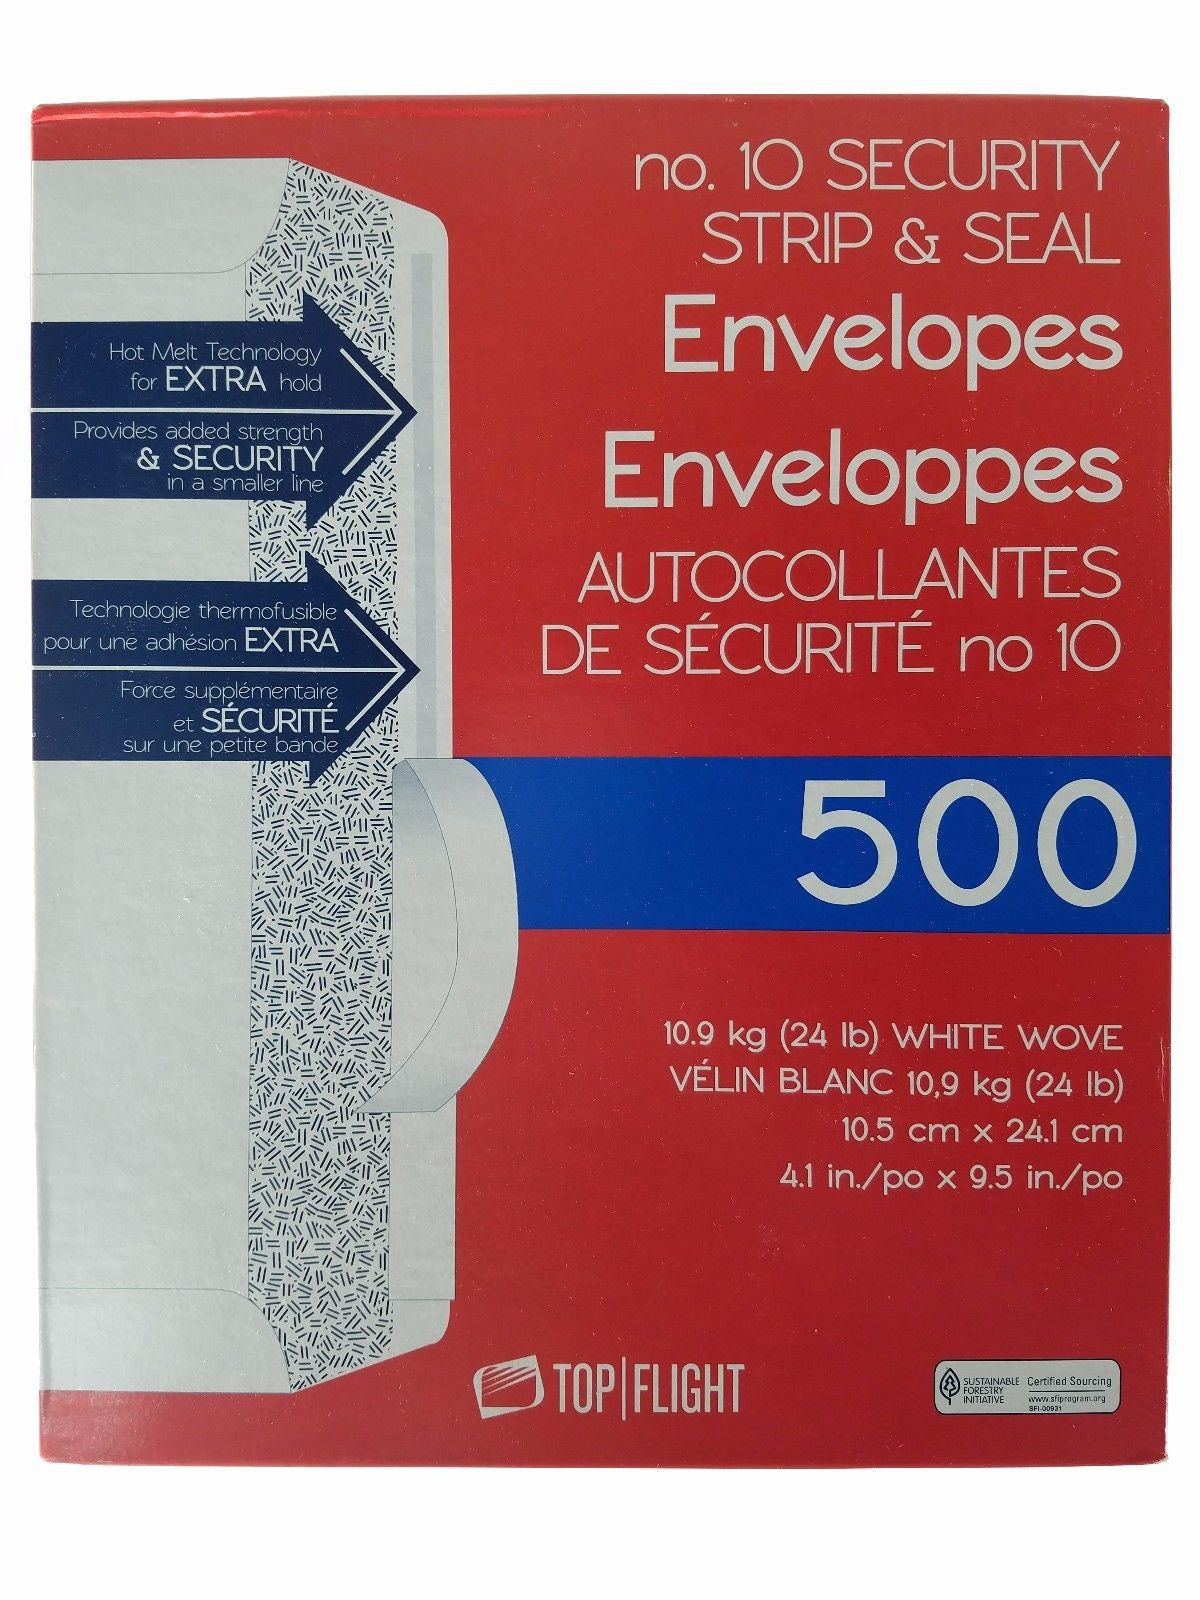 Top Flight No.10 Security Strip & Seal Envelopes 4.1x9.5 in - 500ct